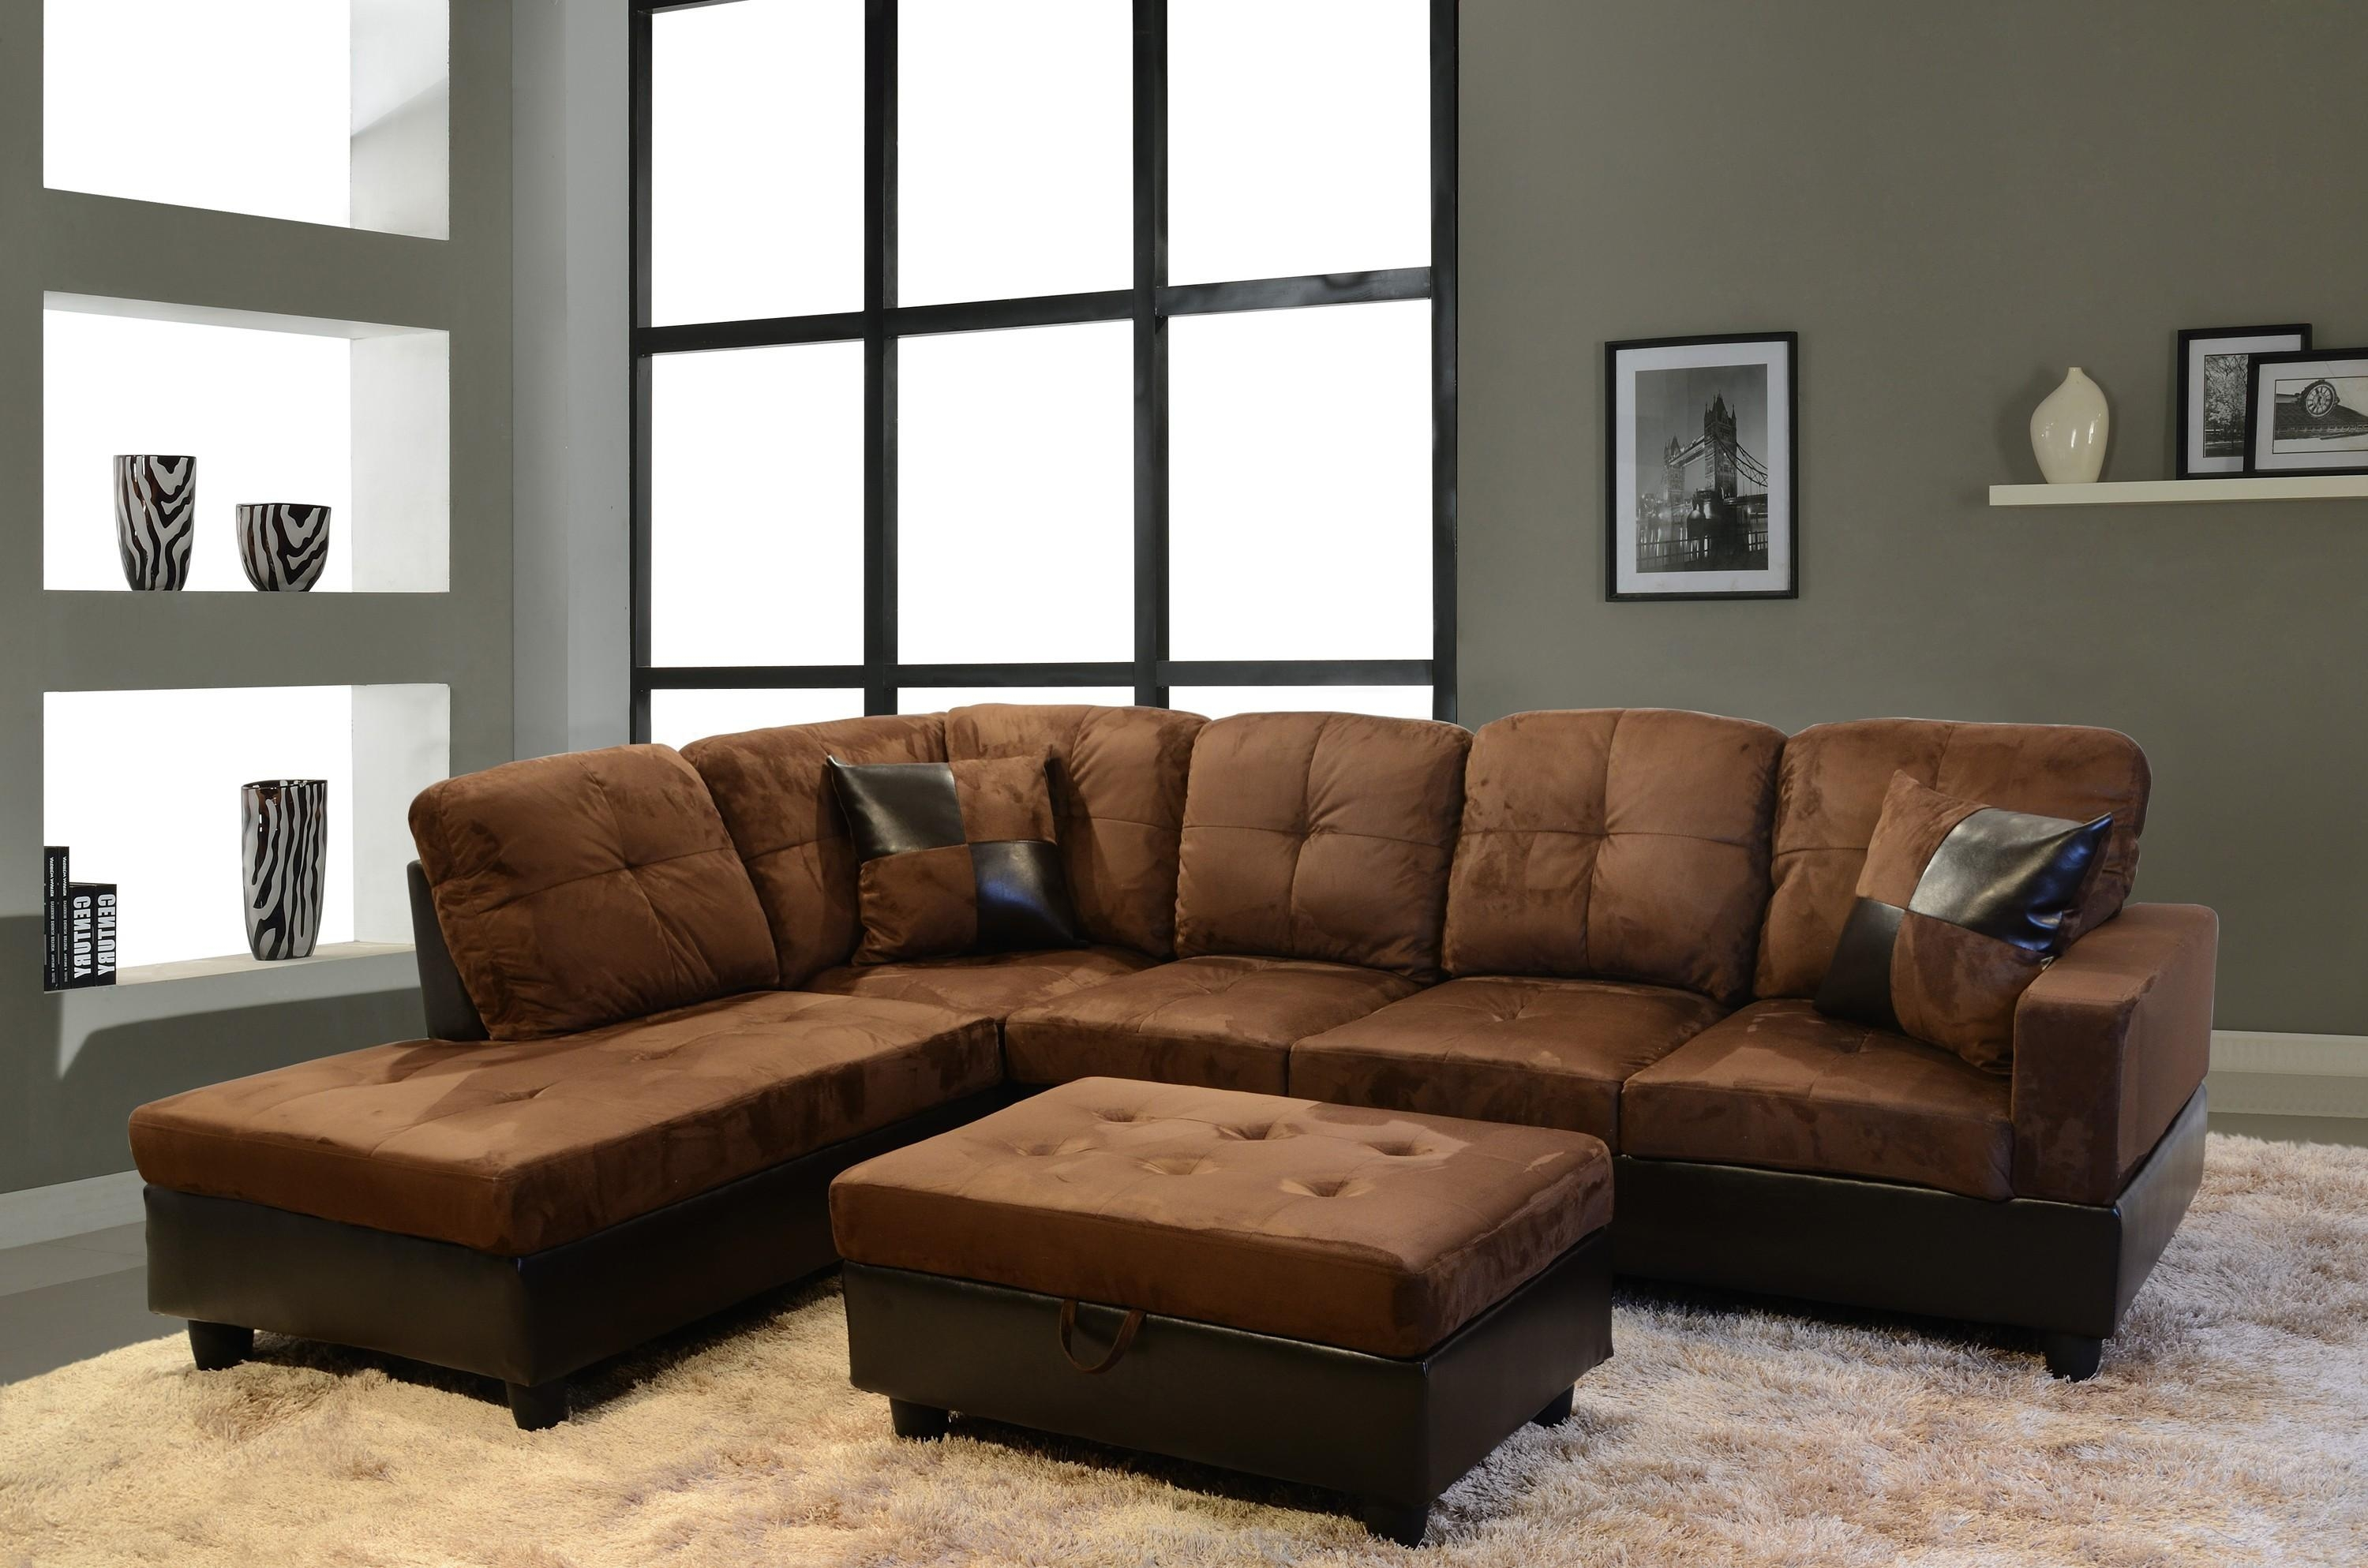 Furniture & Rug: Cheap Sectional Couches For Home Furniture Idea Inside Tufted Sectional With Chaise (Image 3 of 20)